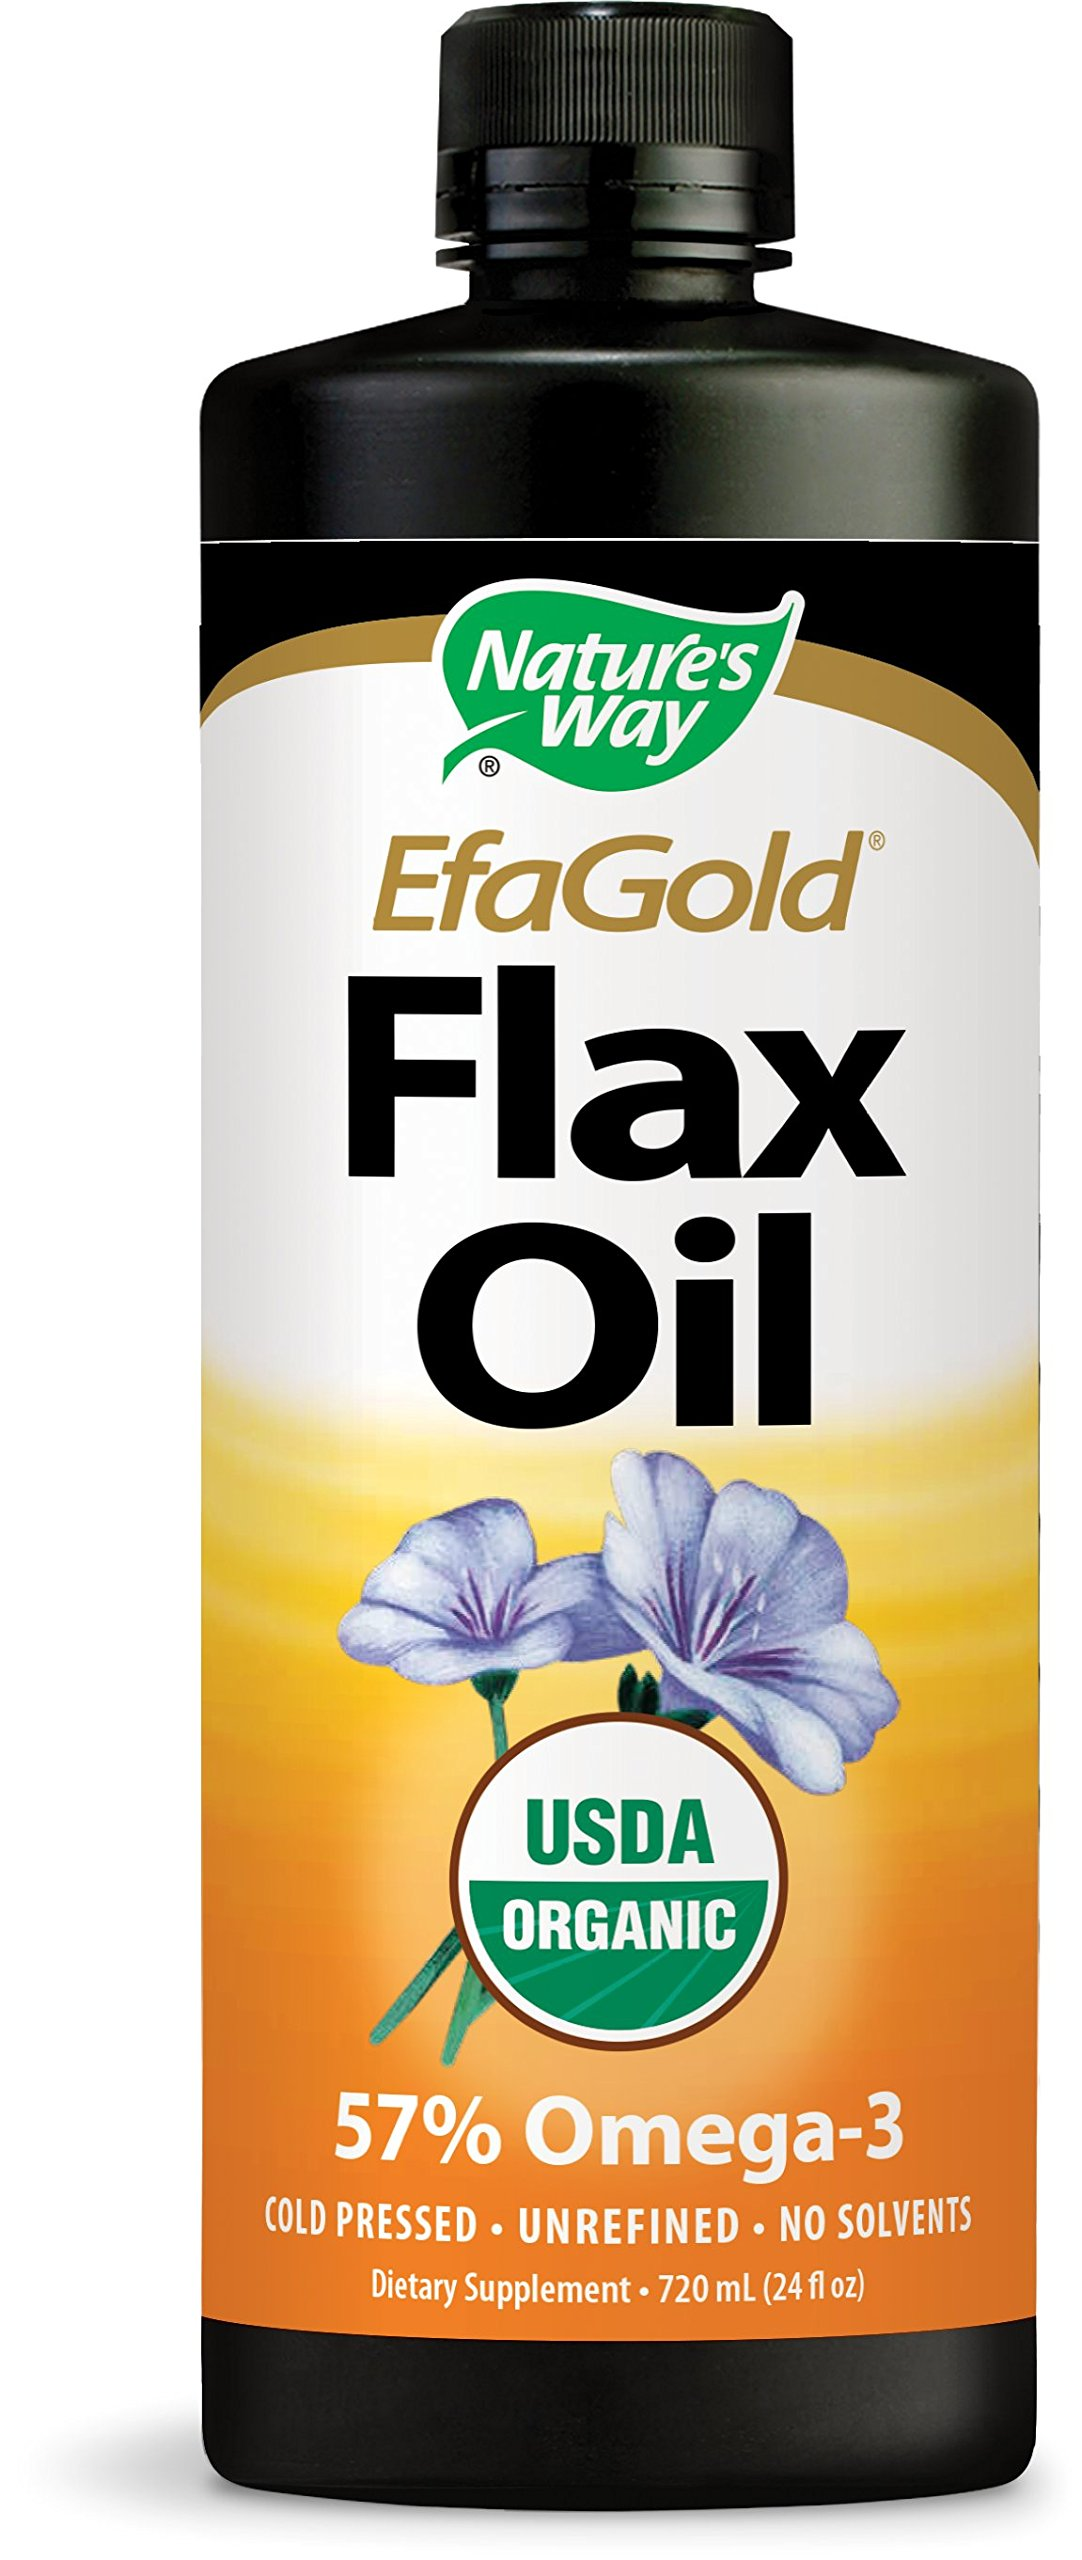 Nature's Way EfaGold Flax Oil USDA Organic, 24 Fl. Oz. by Nature's Way